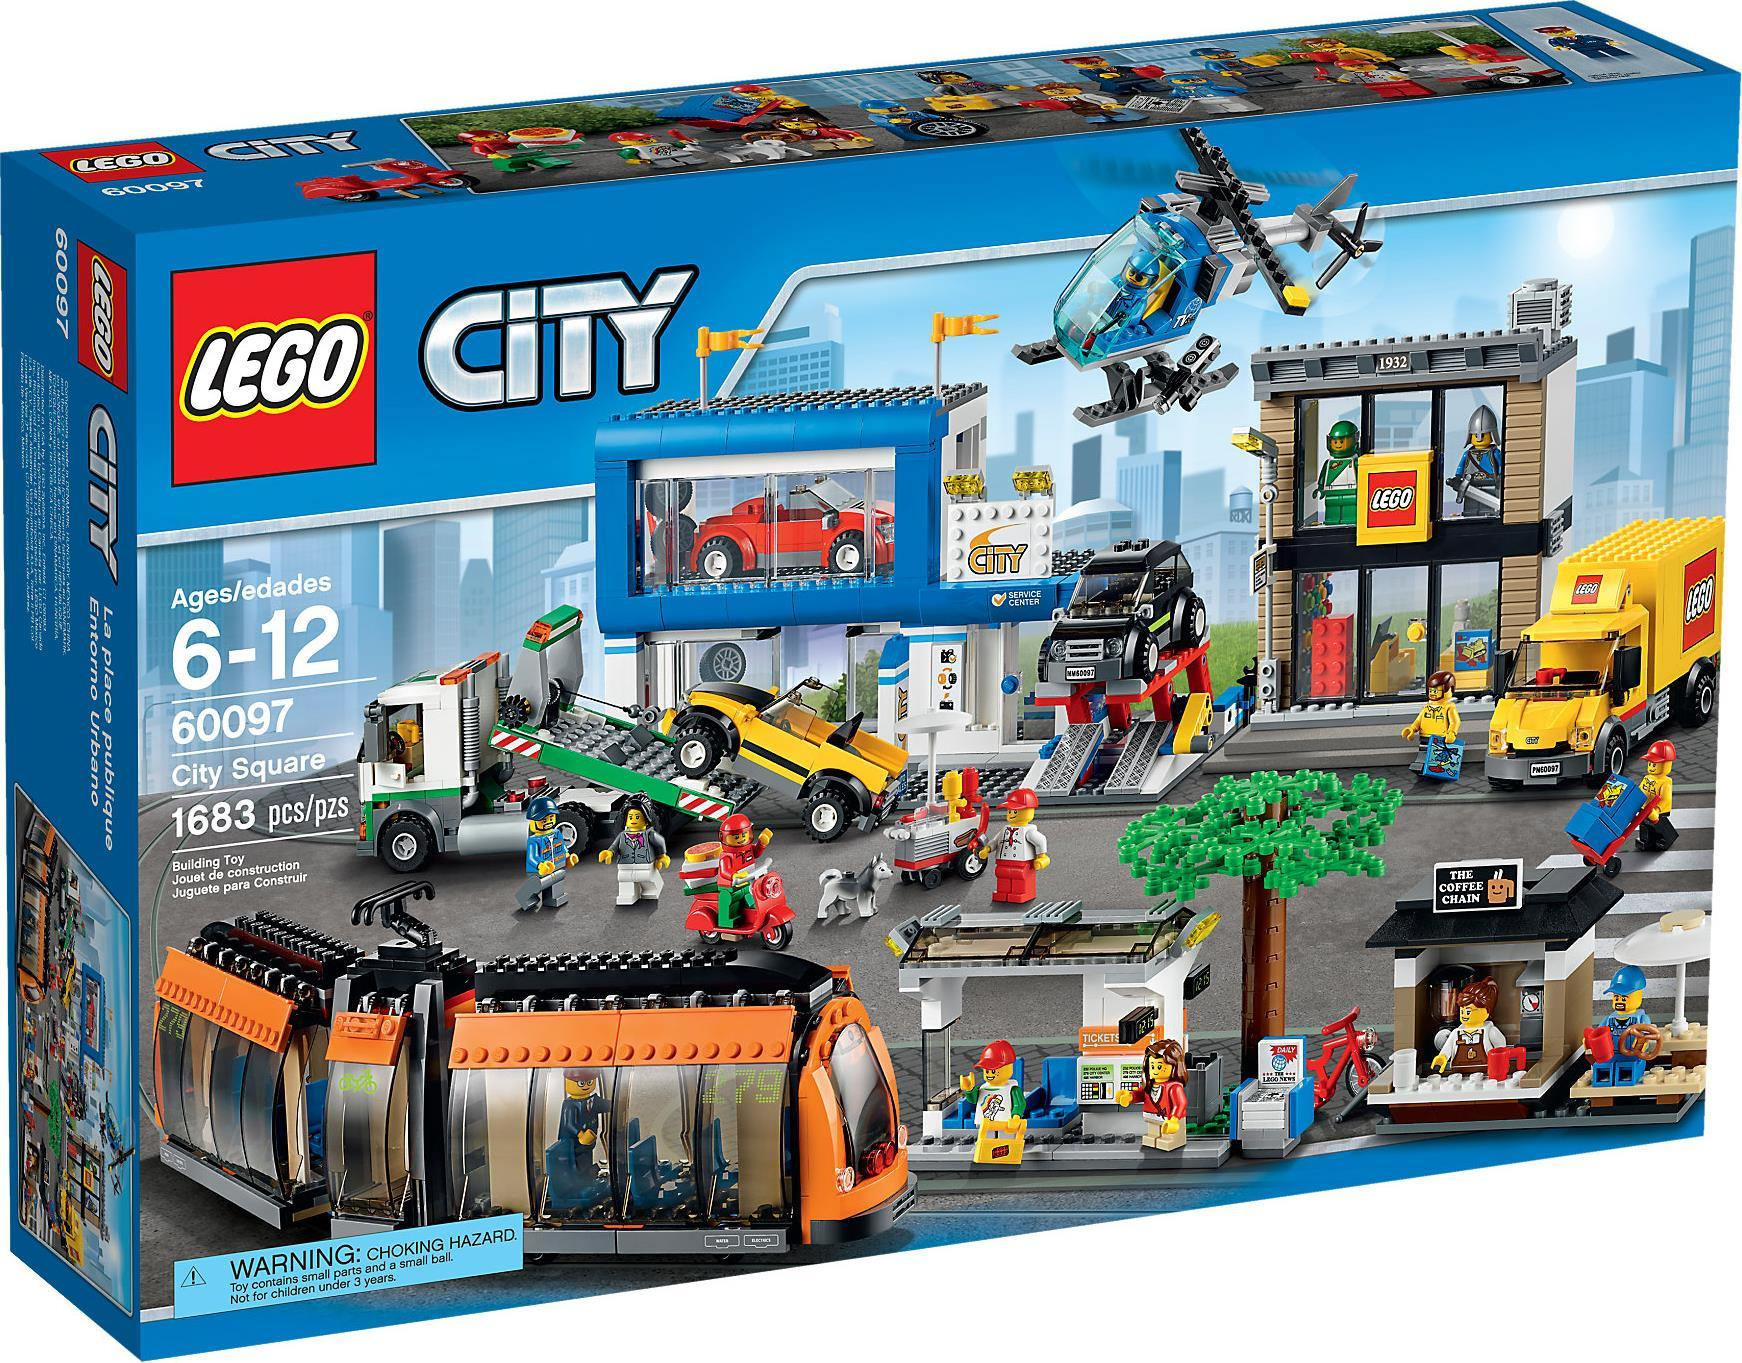 Lego City City Square